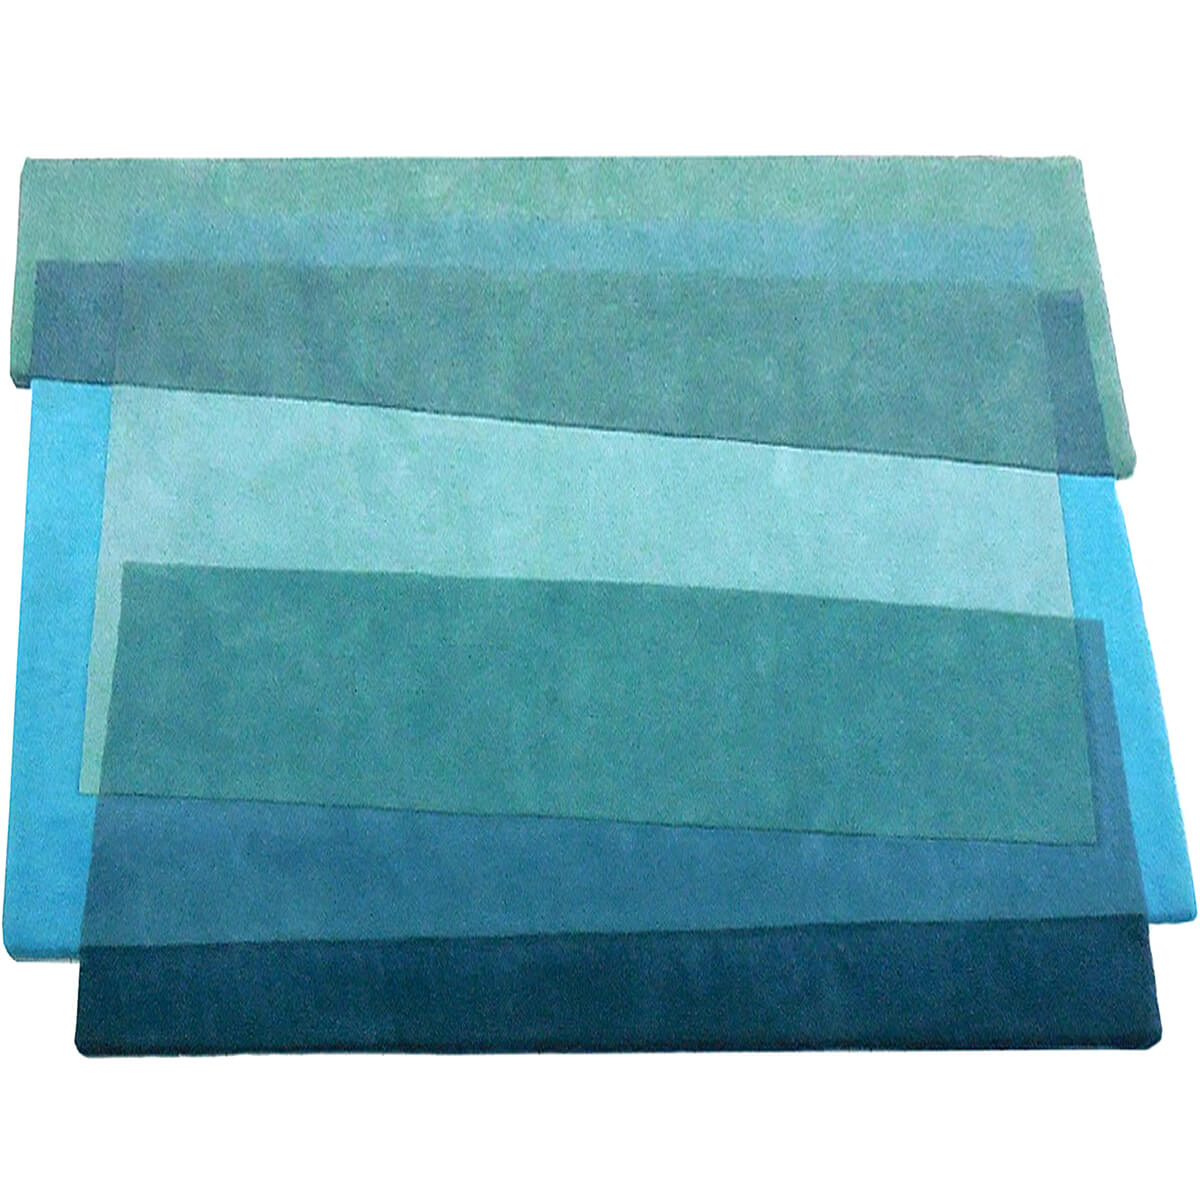 Teal Rug Aqua Teal Sea Sonya Winner Rugs Studio